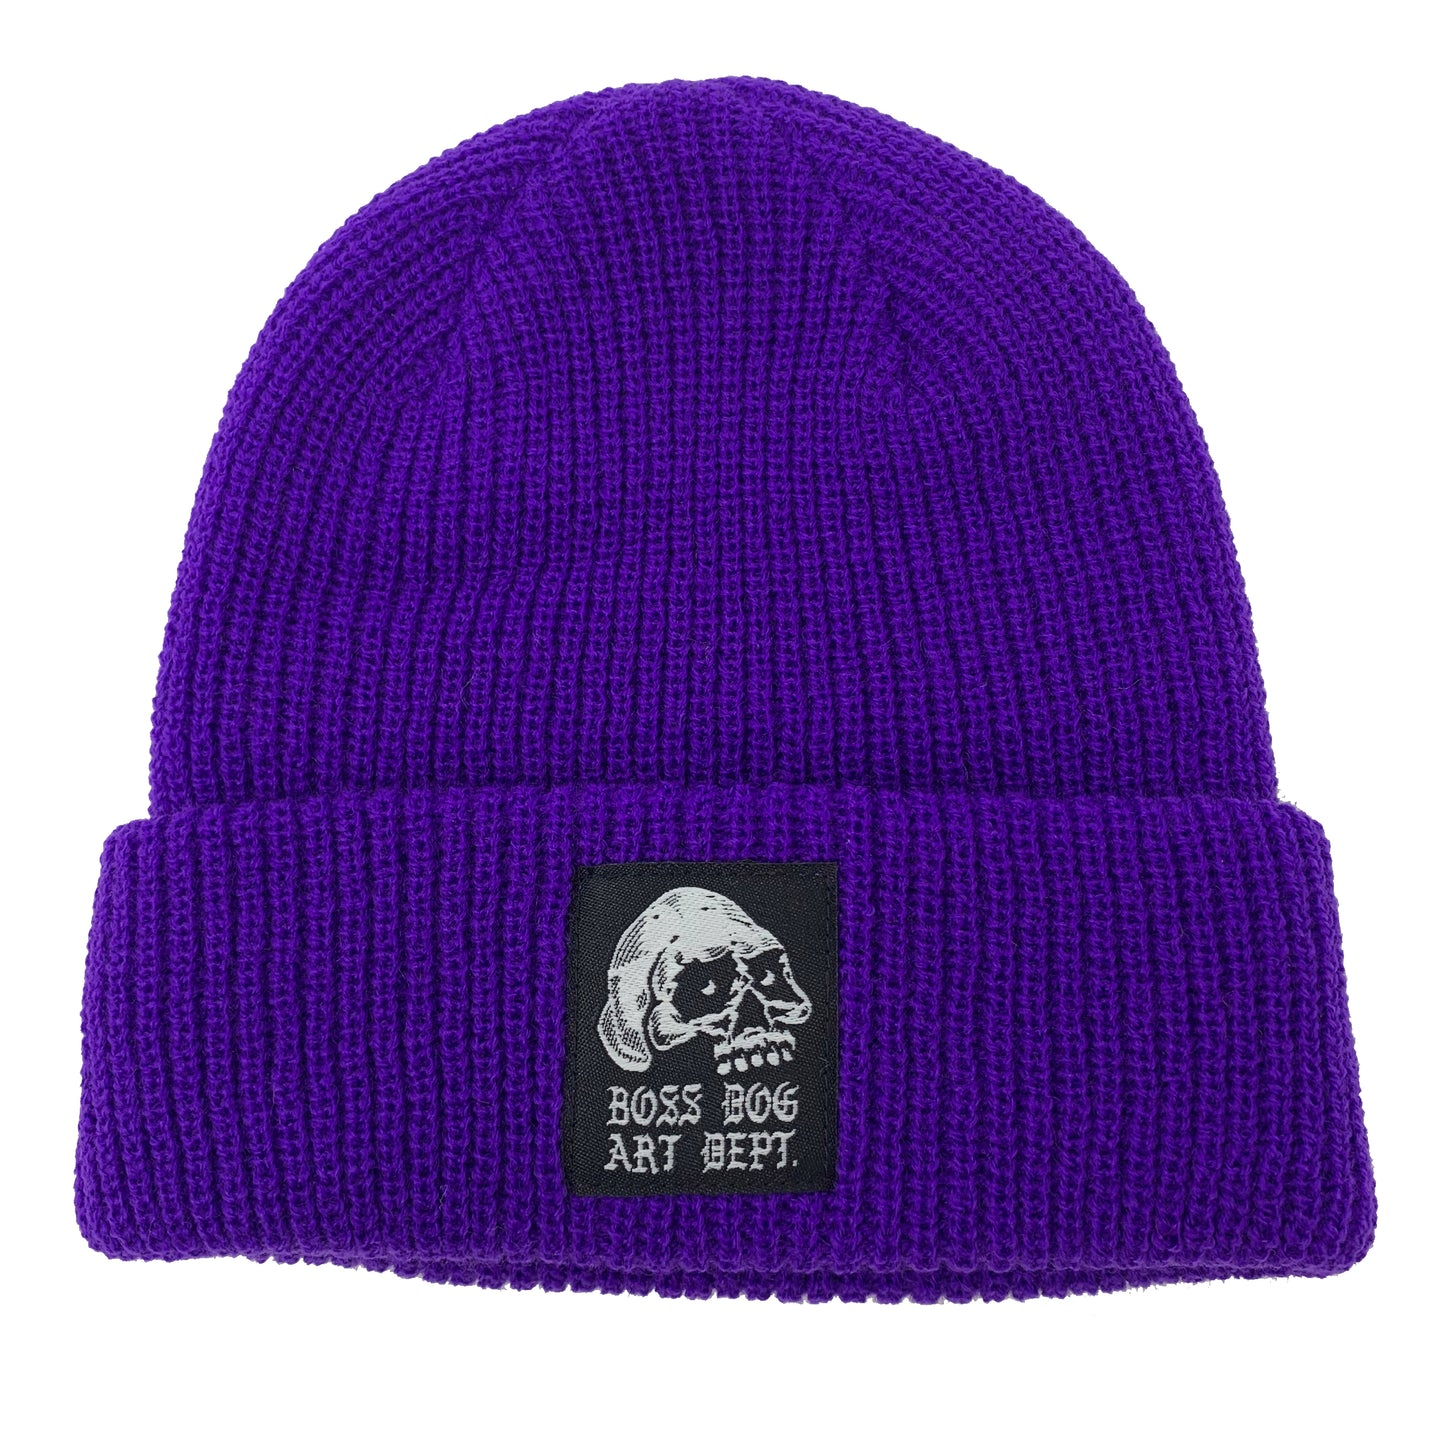 Boss Dog Art Dept. Purple Beanie